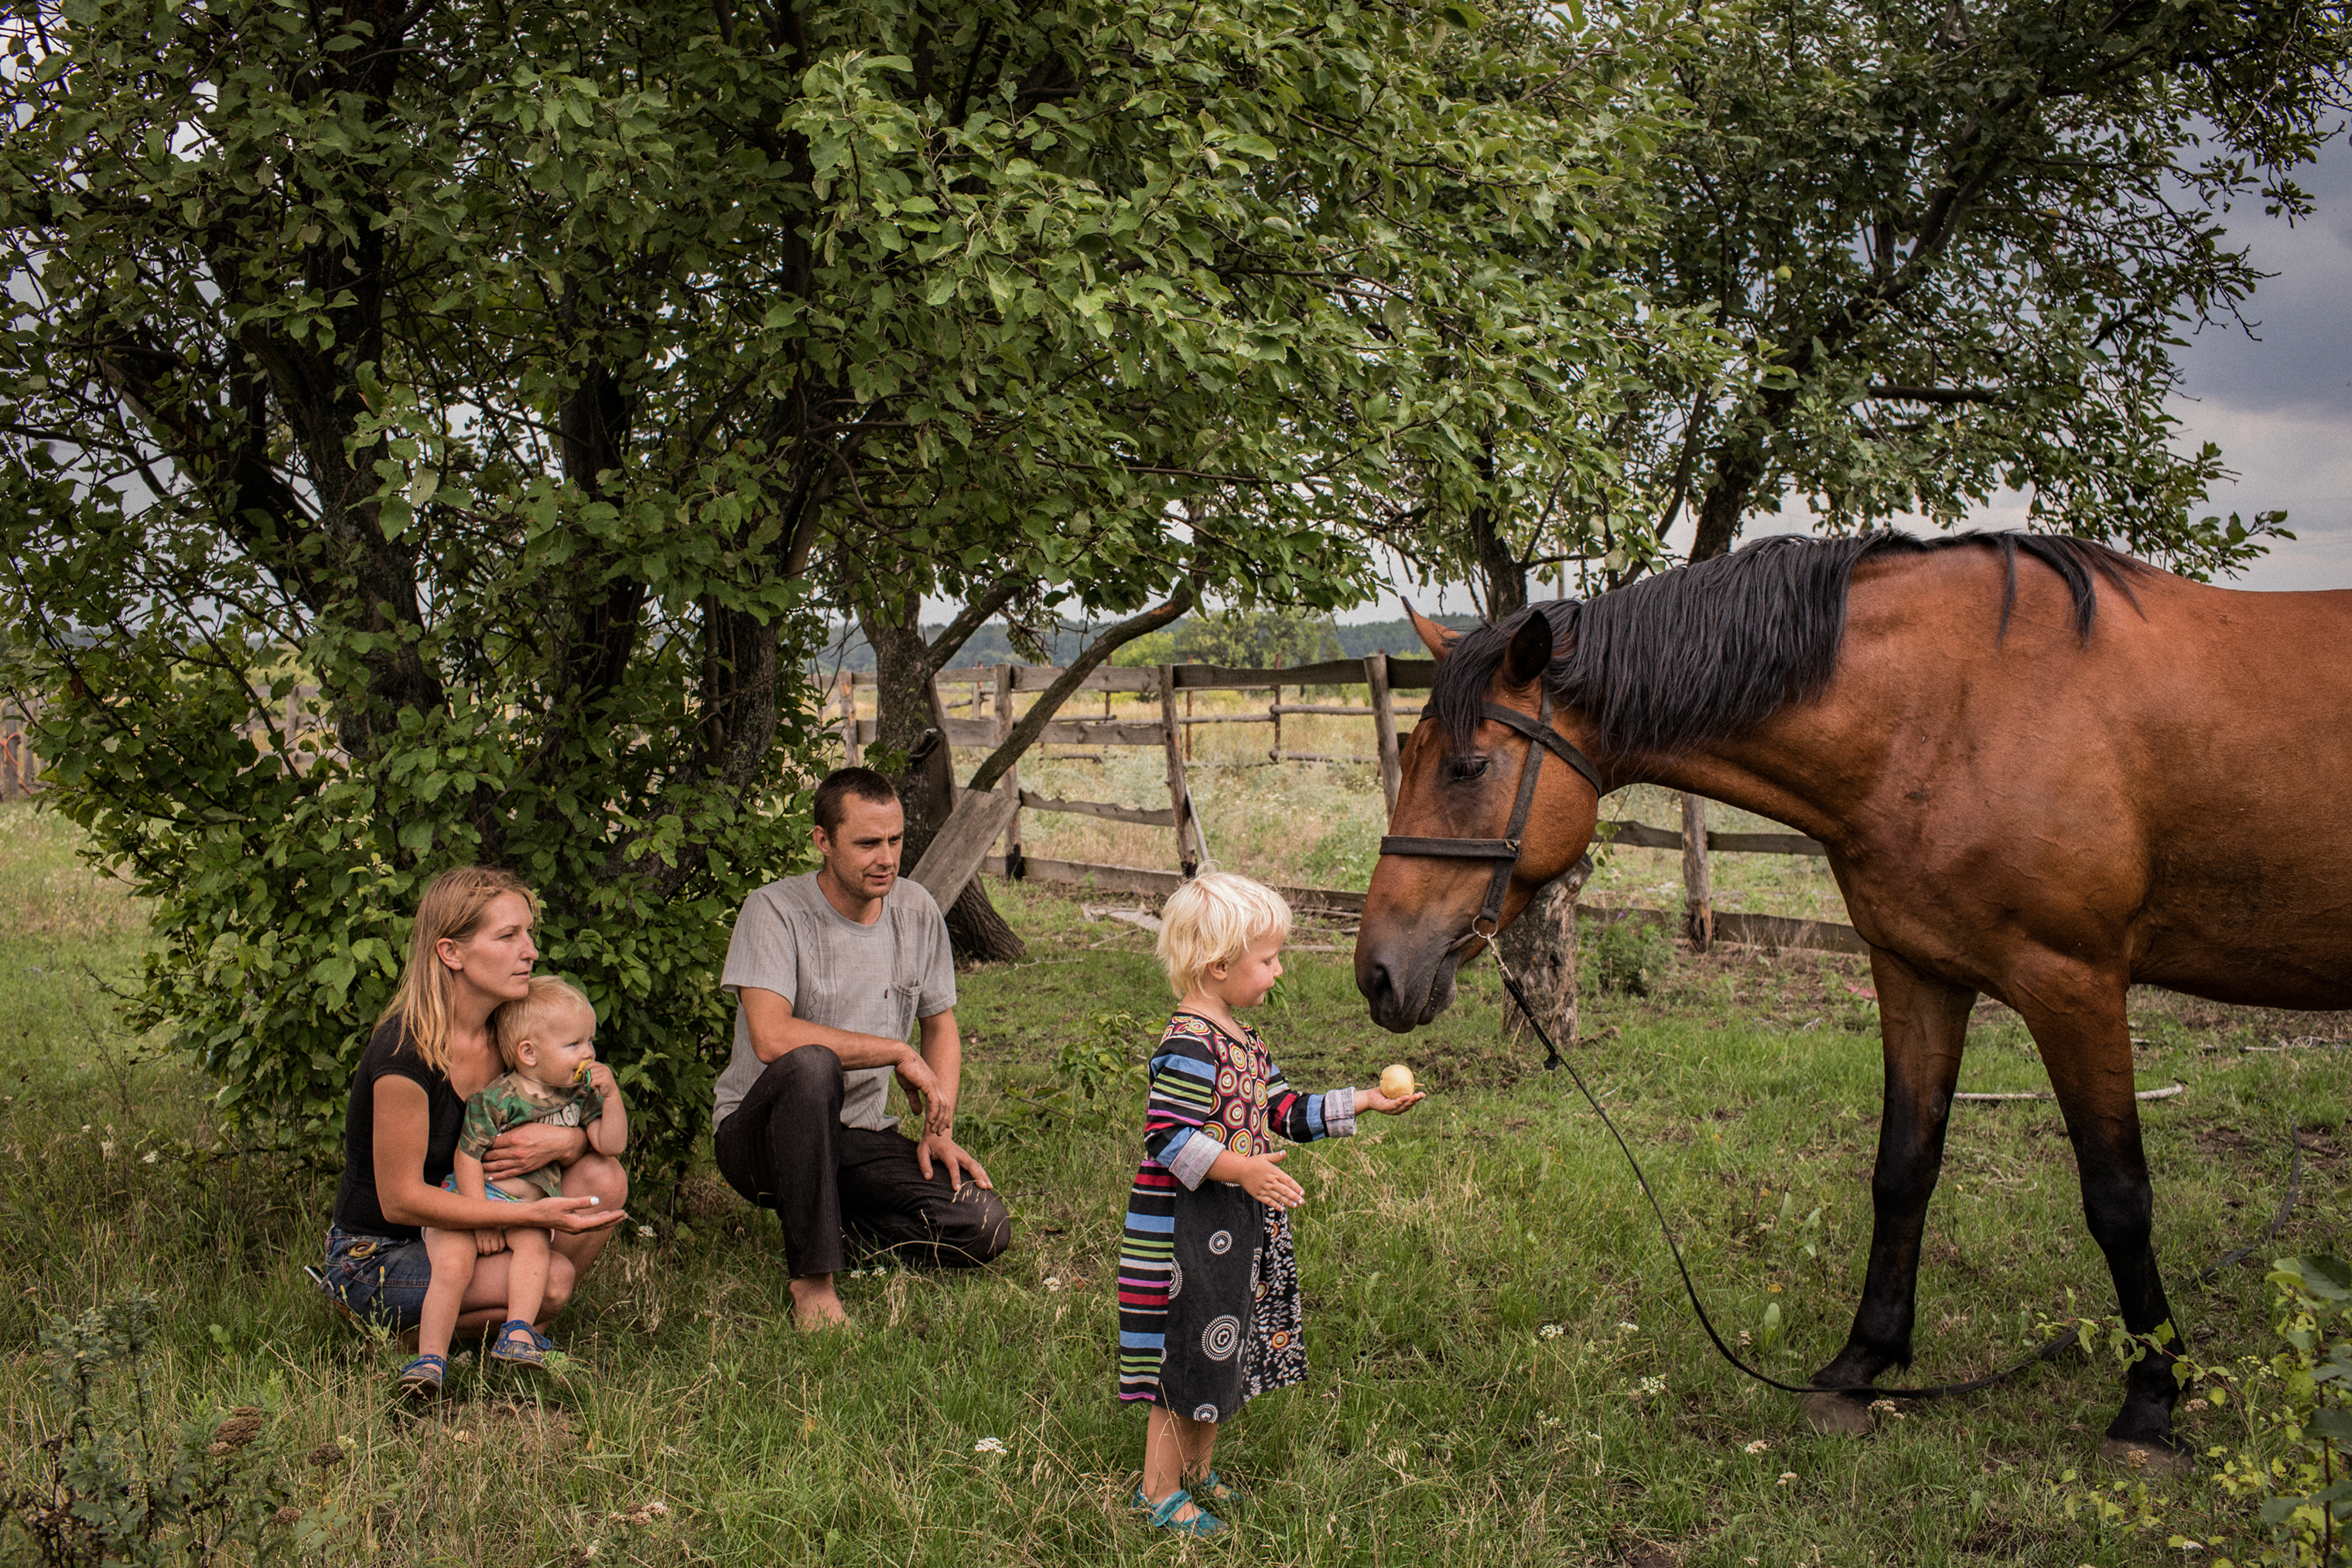 Olga and Nikolay Grinik in old Avdeevka. Both of their children were born during the war, and they joke about it:  In 2014, we were sitting without electricity for three months because of fighting. Nine months later, our daughter Miroslava (right) was born. In 2016, we had no light for a month, and nine months later we got our son Kirill (left). How else you gonna entertain yourself in the darkness? Now,  says Nikolay,  we pray there is no electricity outage again.""